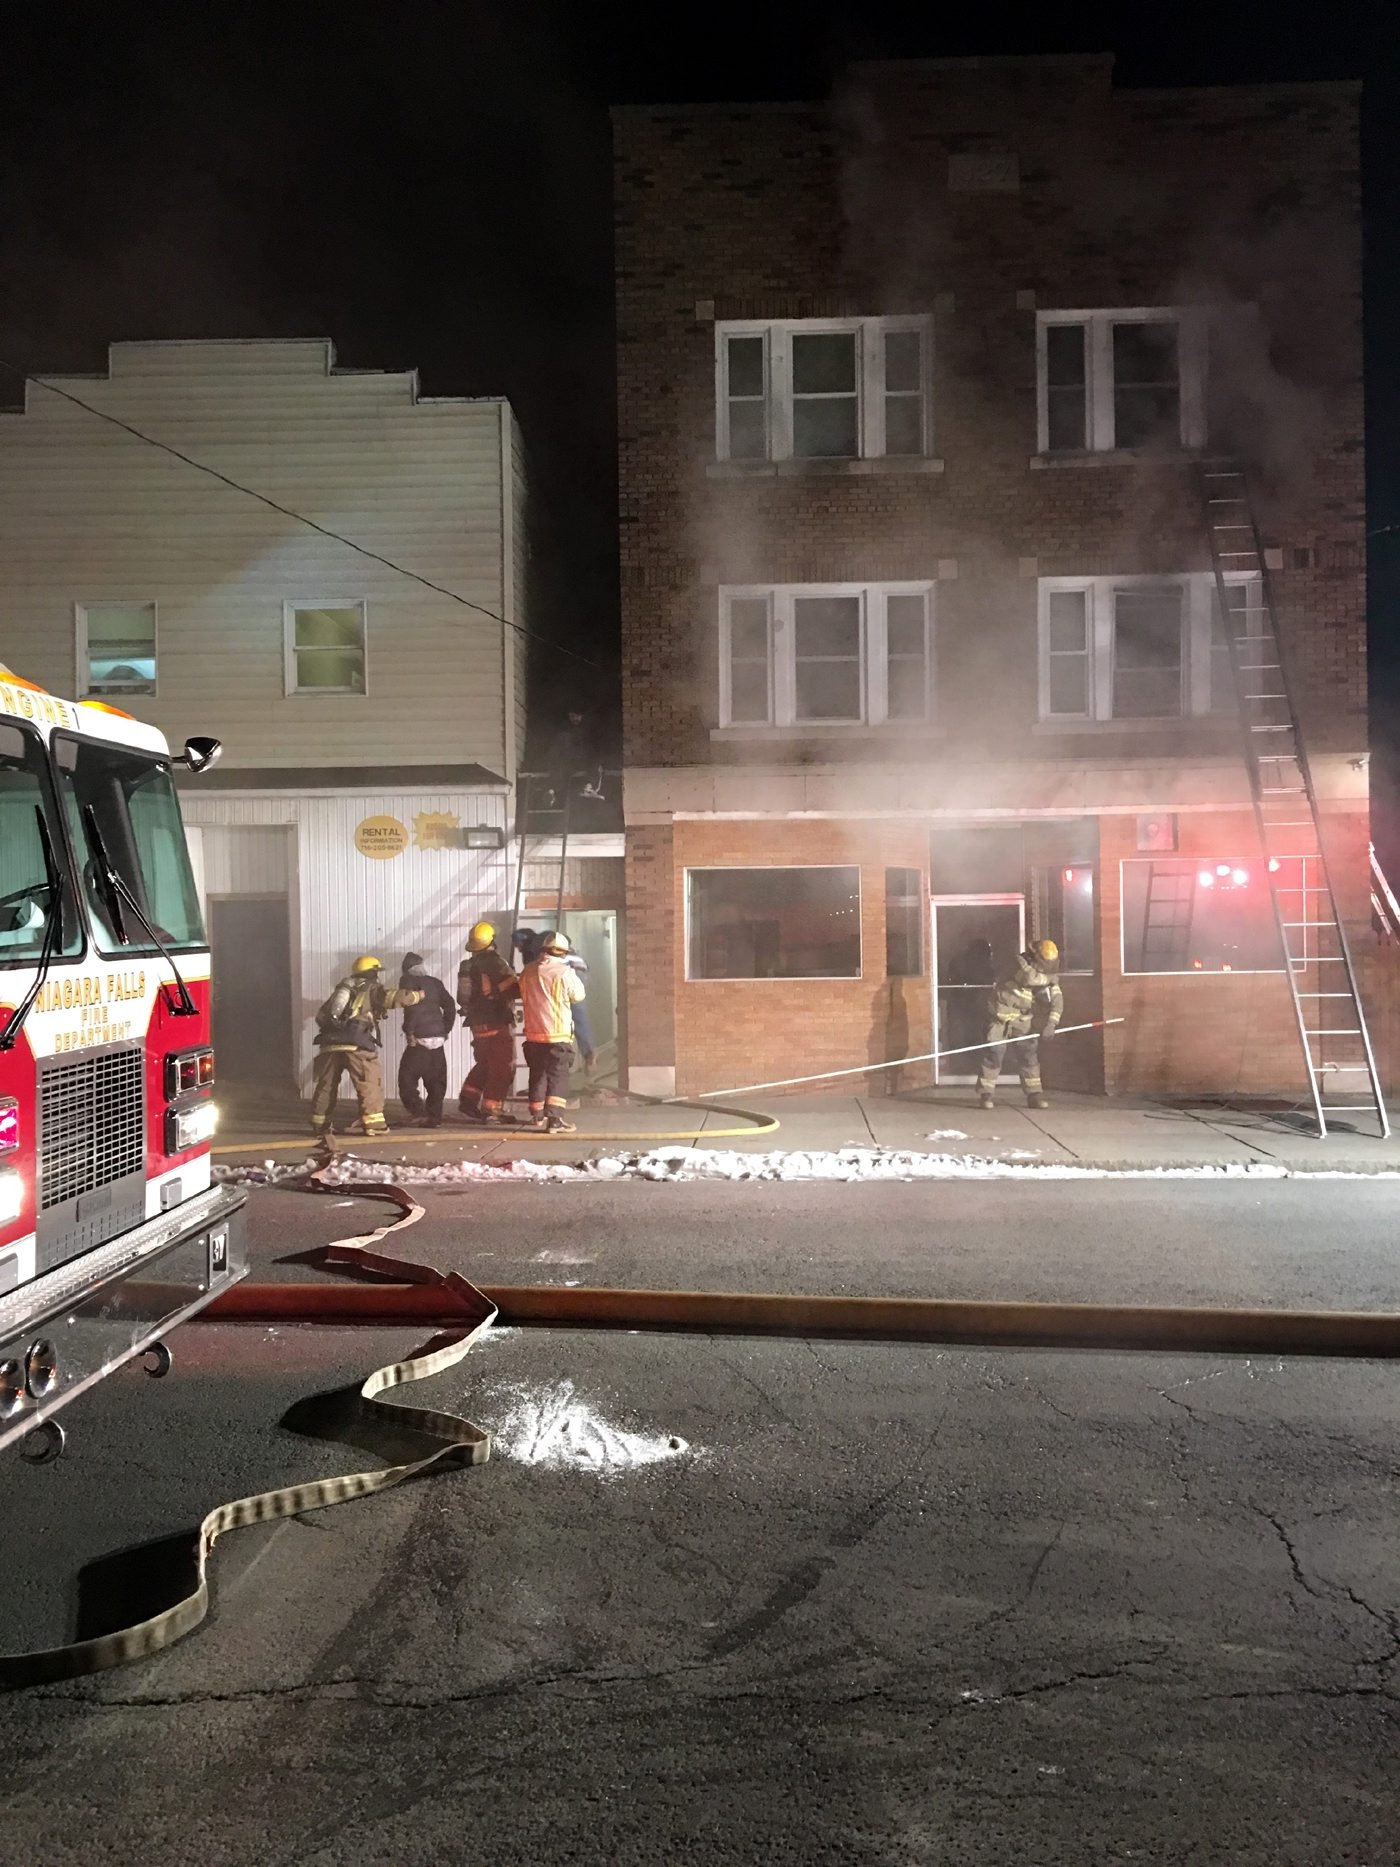 Firefighters in Niagara Falls used ladder trucks to rescue several people from a rooming house on Niagara Street that caught on fire. More than 20 residents were left homeless.